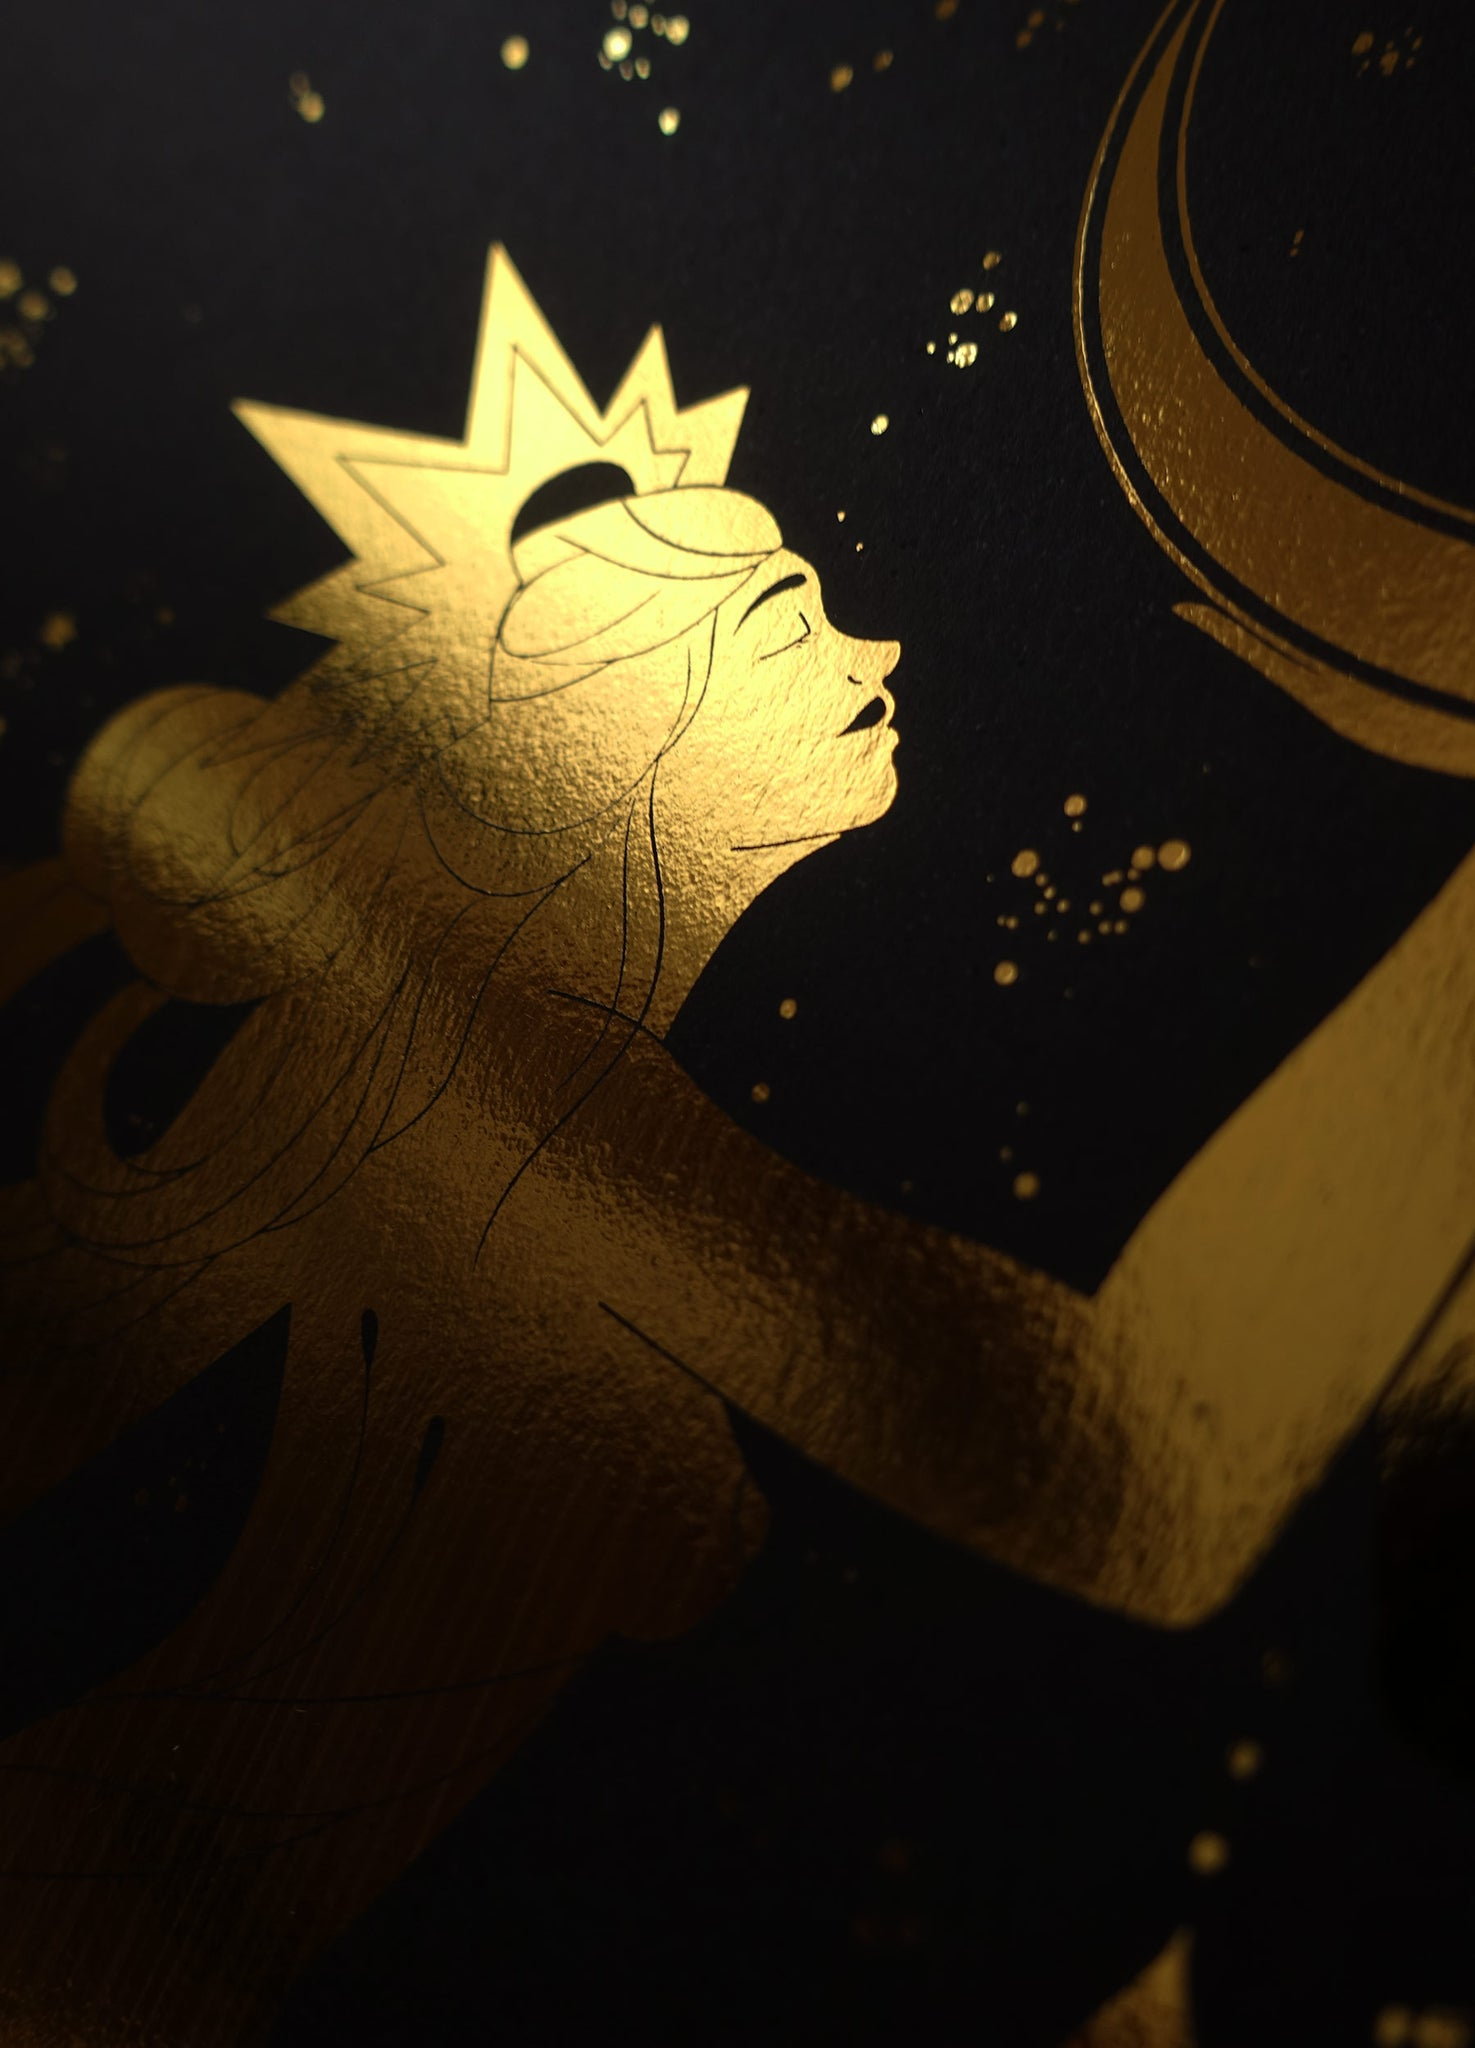 Gemini Stars gold foil art print on black stock paper by Cocorrina & Co Design Studio & Shop